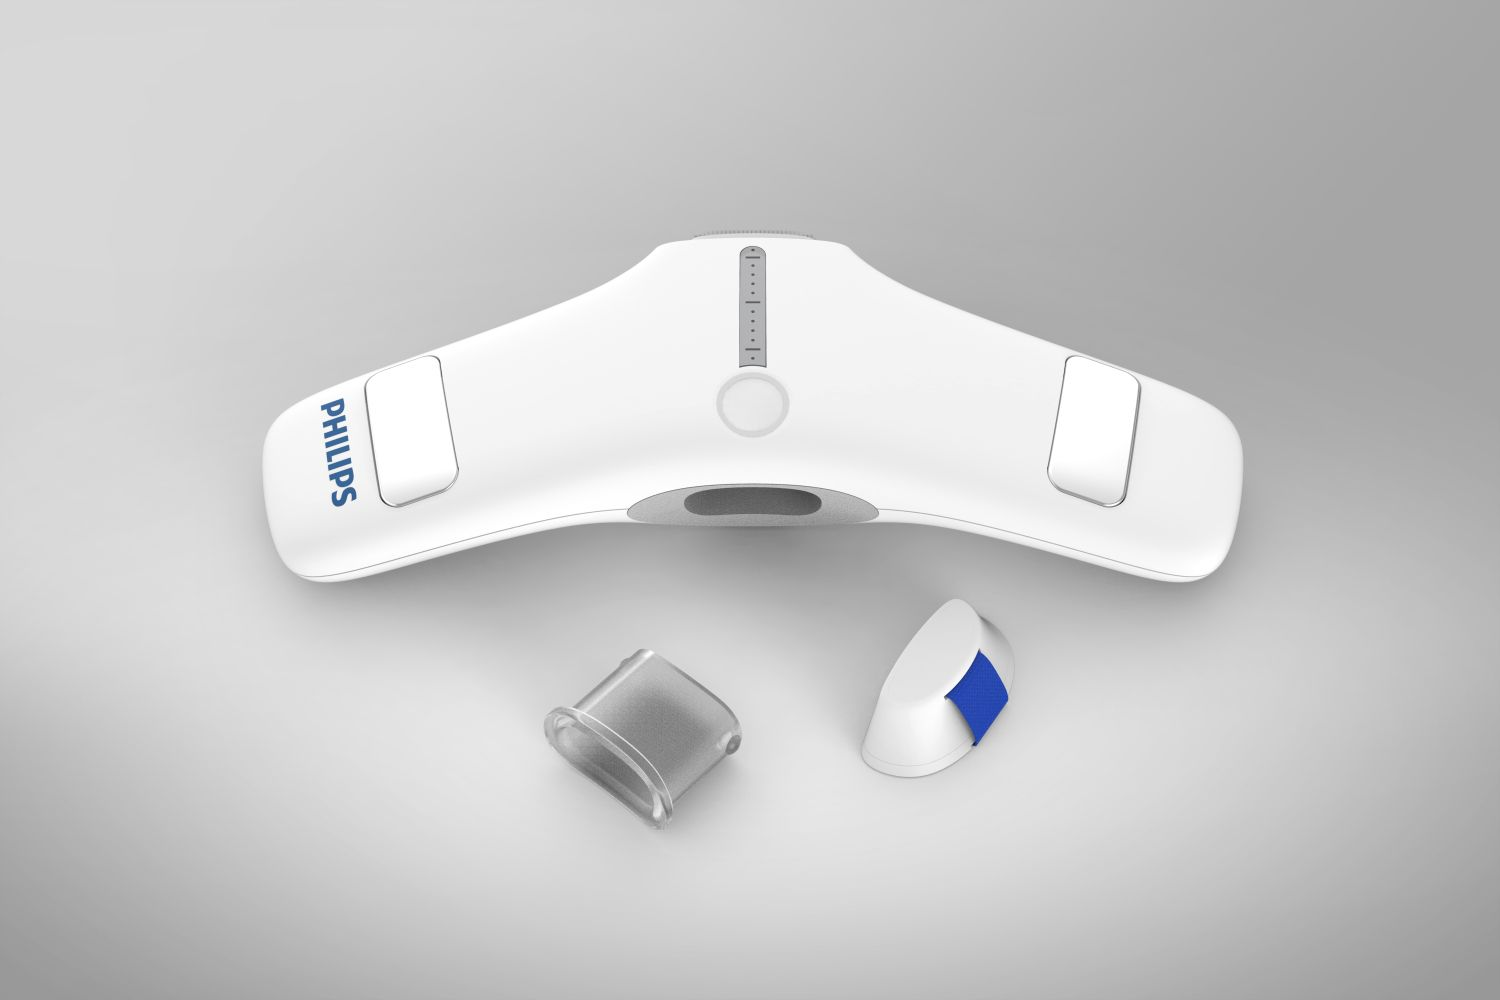 The device came with detachable mouthpieces and filter which could be clean and reuse.